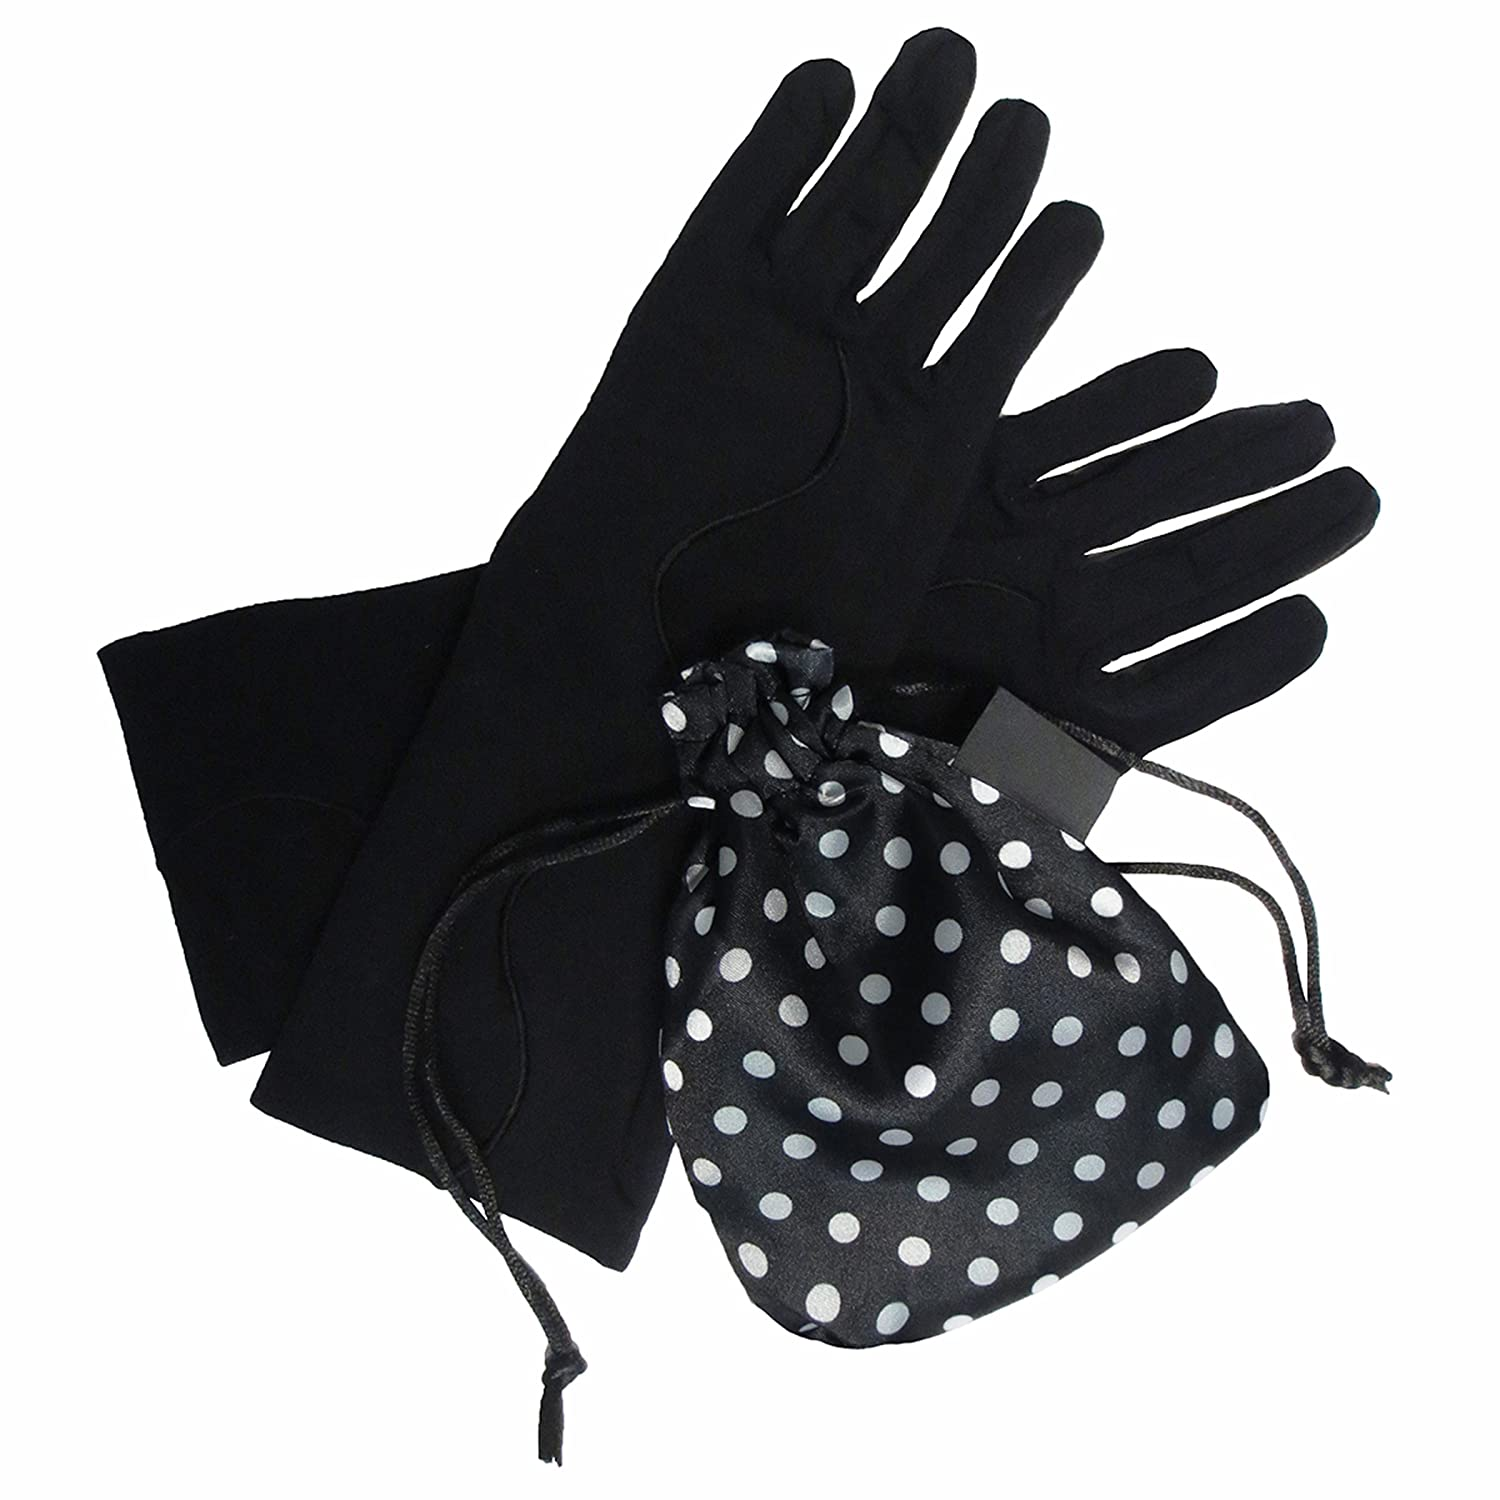 Black gloves with leopard trim - Chilly Jilly Women S Lightweight Microfiber Gloves 2 Pair One Size At Amazon Women S Clothing Store